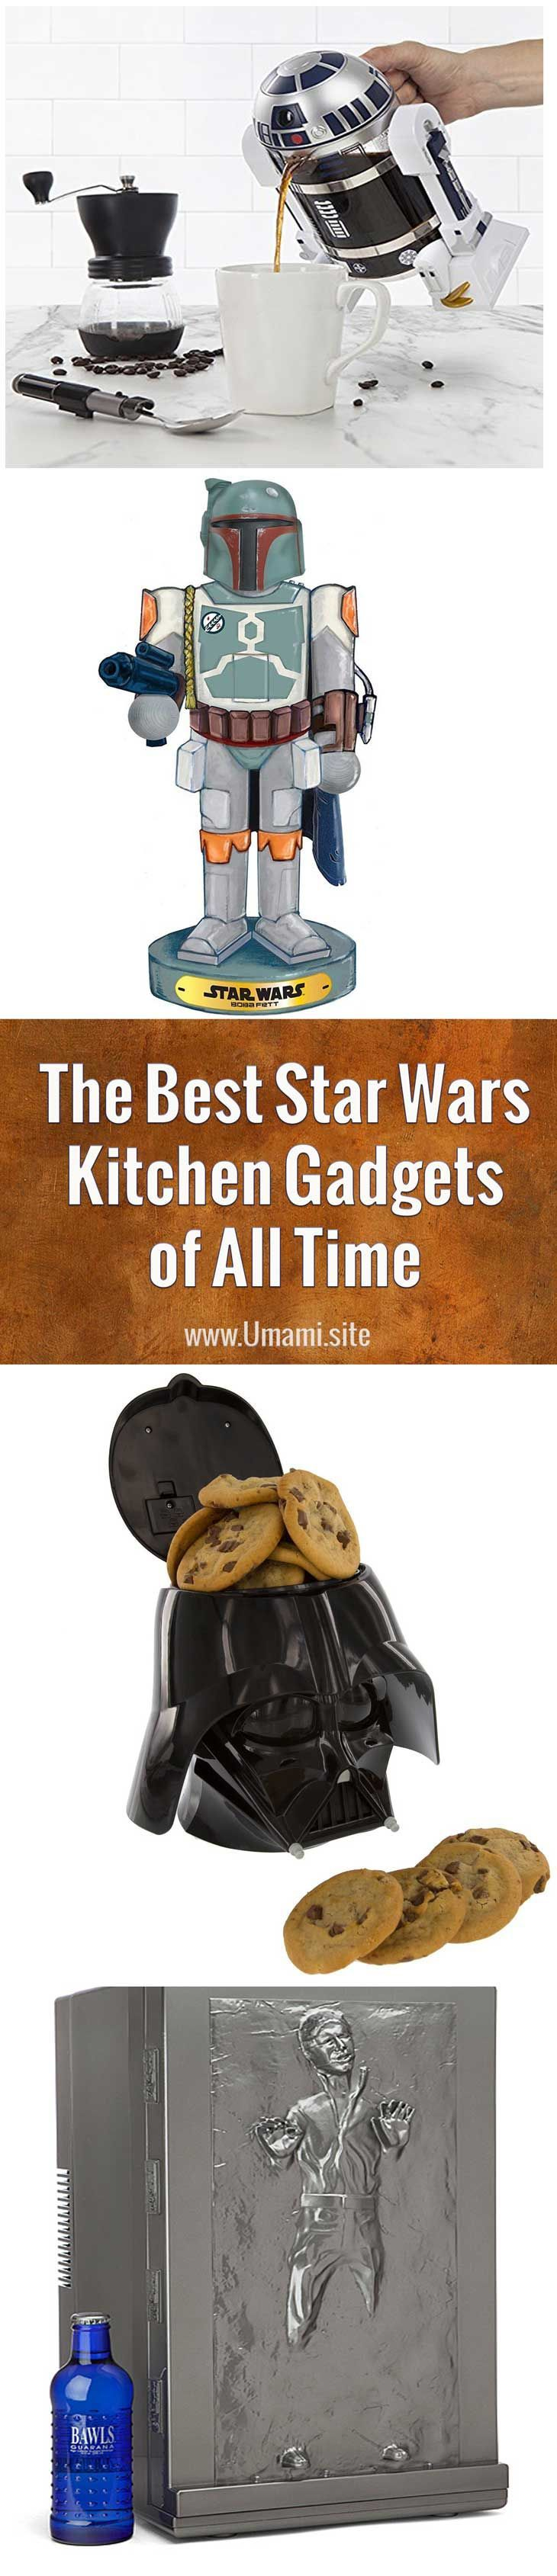 learn to cook like a jedi and drink like a wookiee with the best